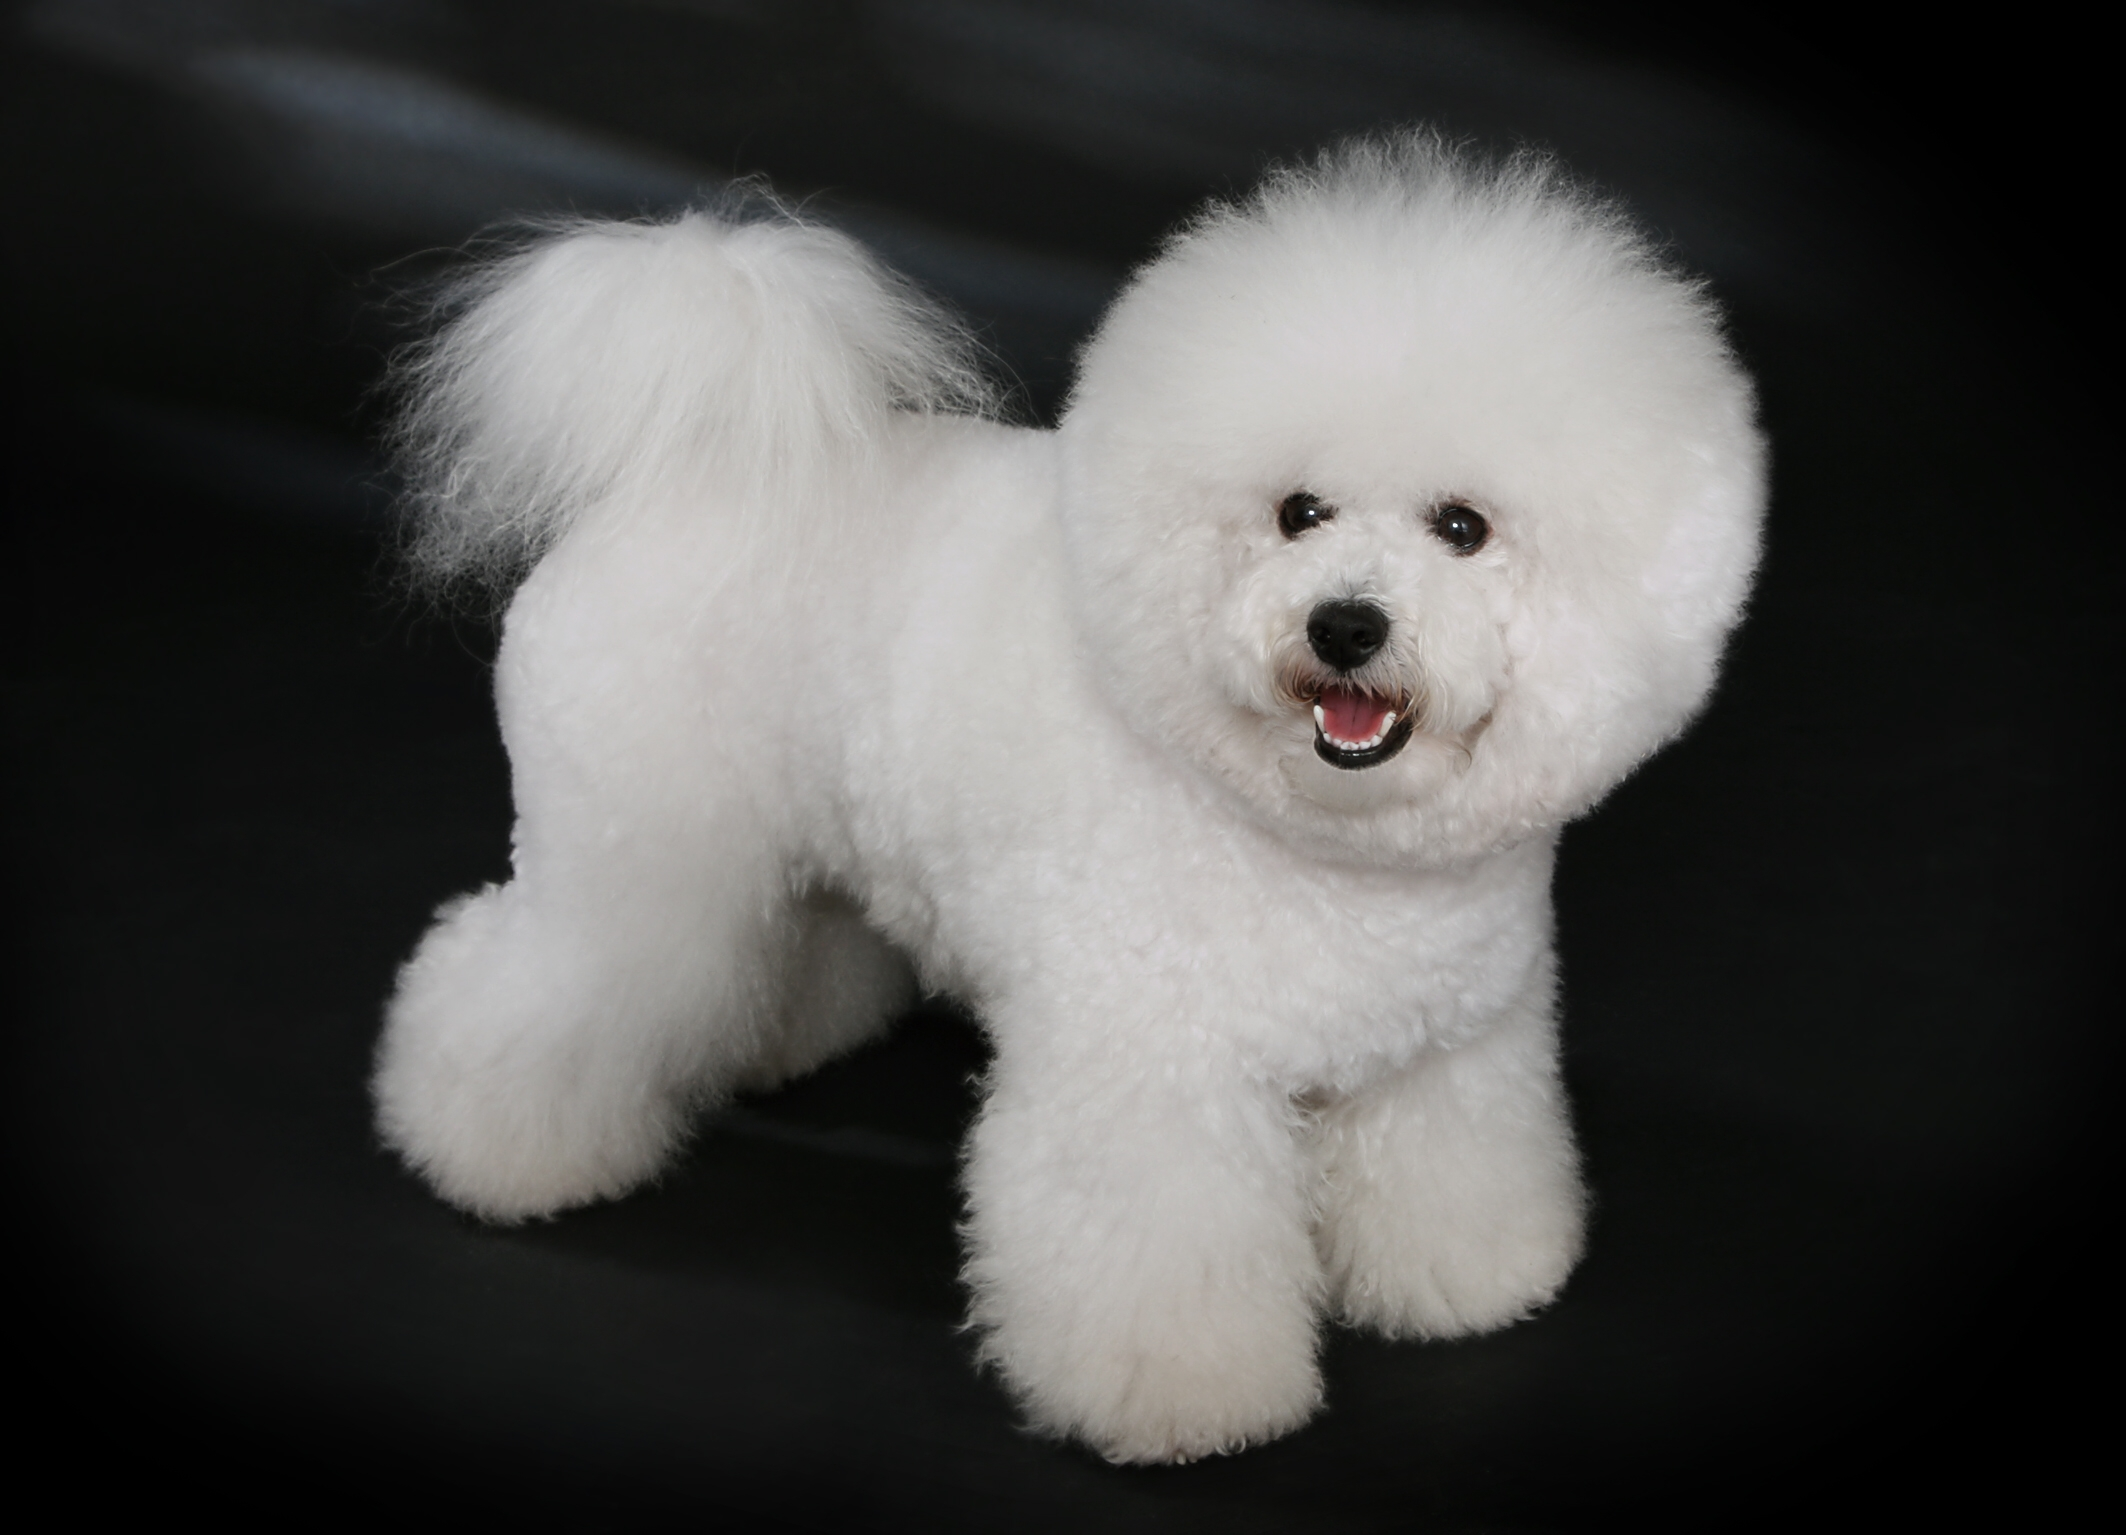 A Bichon Frise, similar to the one attacked in Brentwood